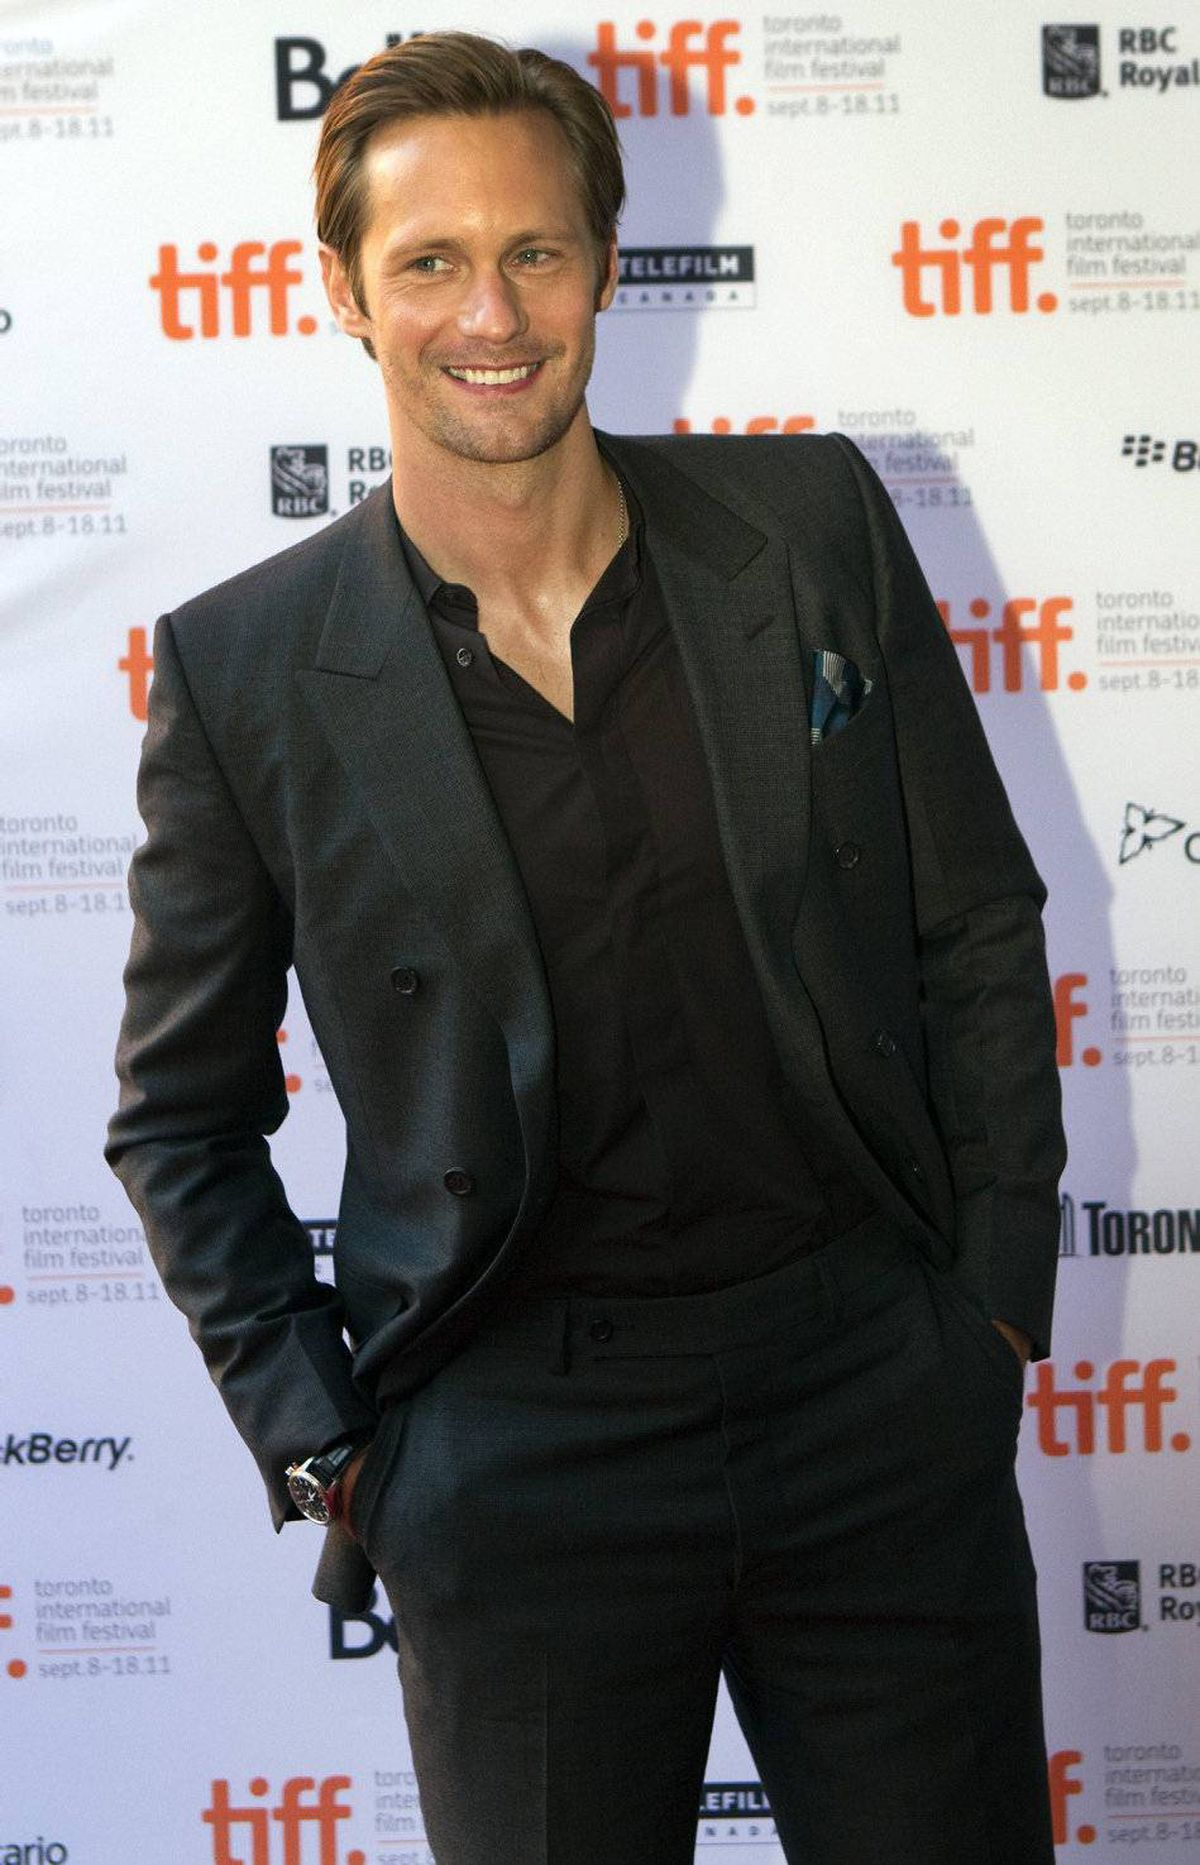 Actor Alexander Skarsgard arrives at the gala premier of the movie Melancholia at the Ryerson Theatre at the 36th Toronto International Film Festival in Toronto September 10, 2011.